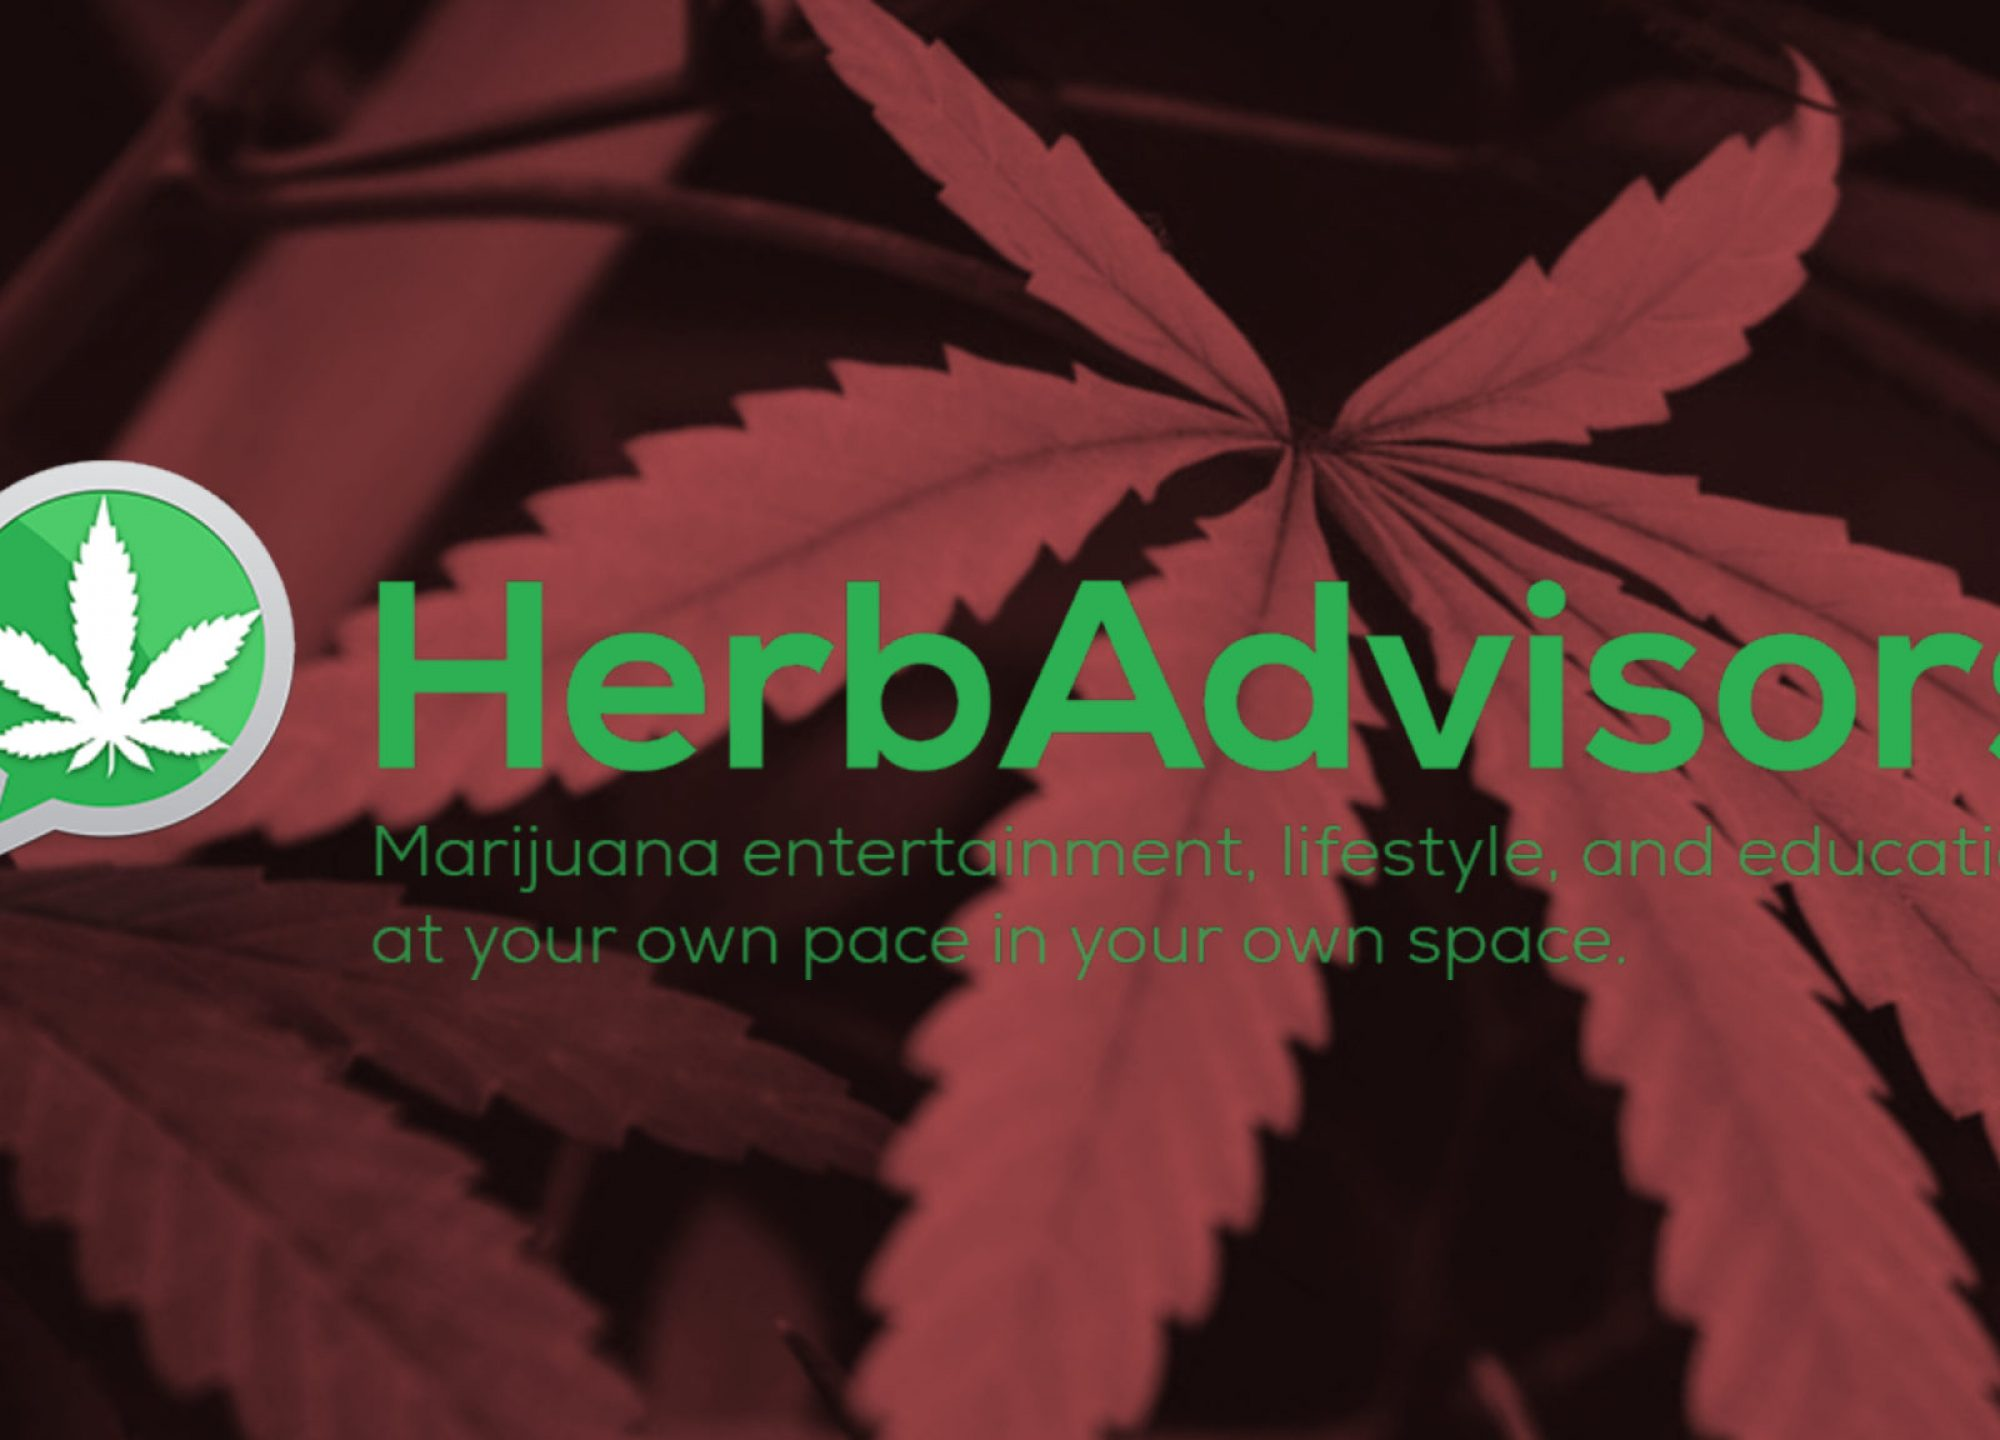 HERB ADVISORS